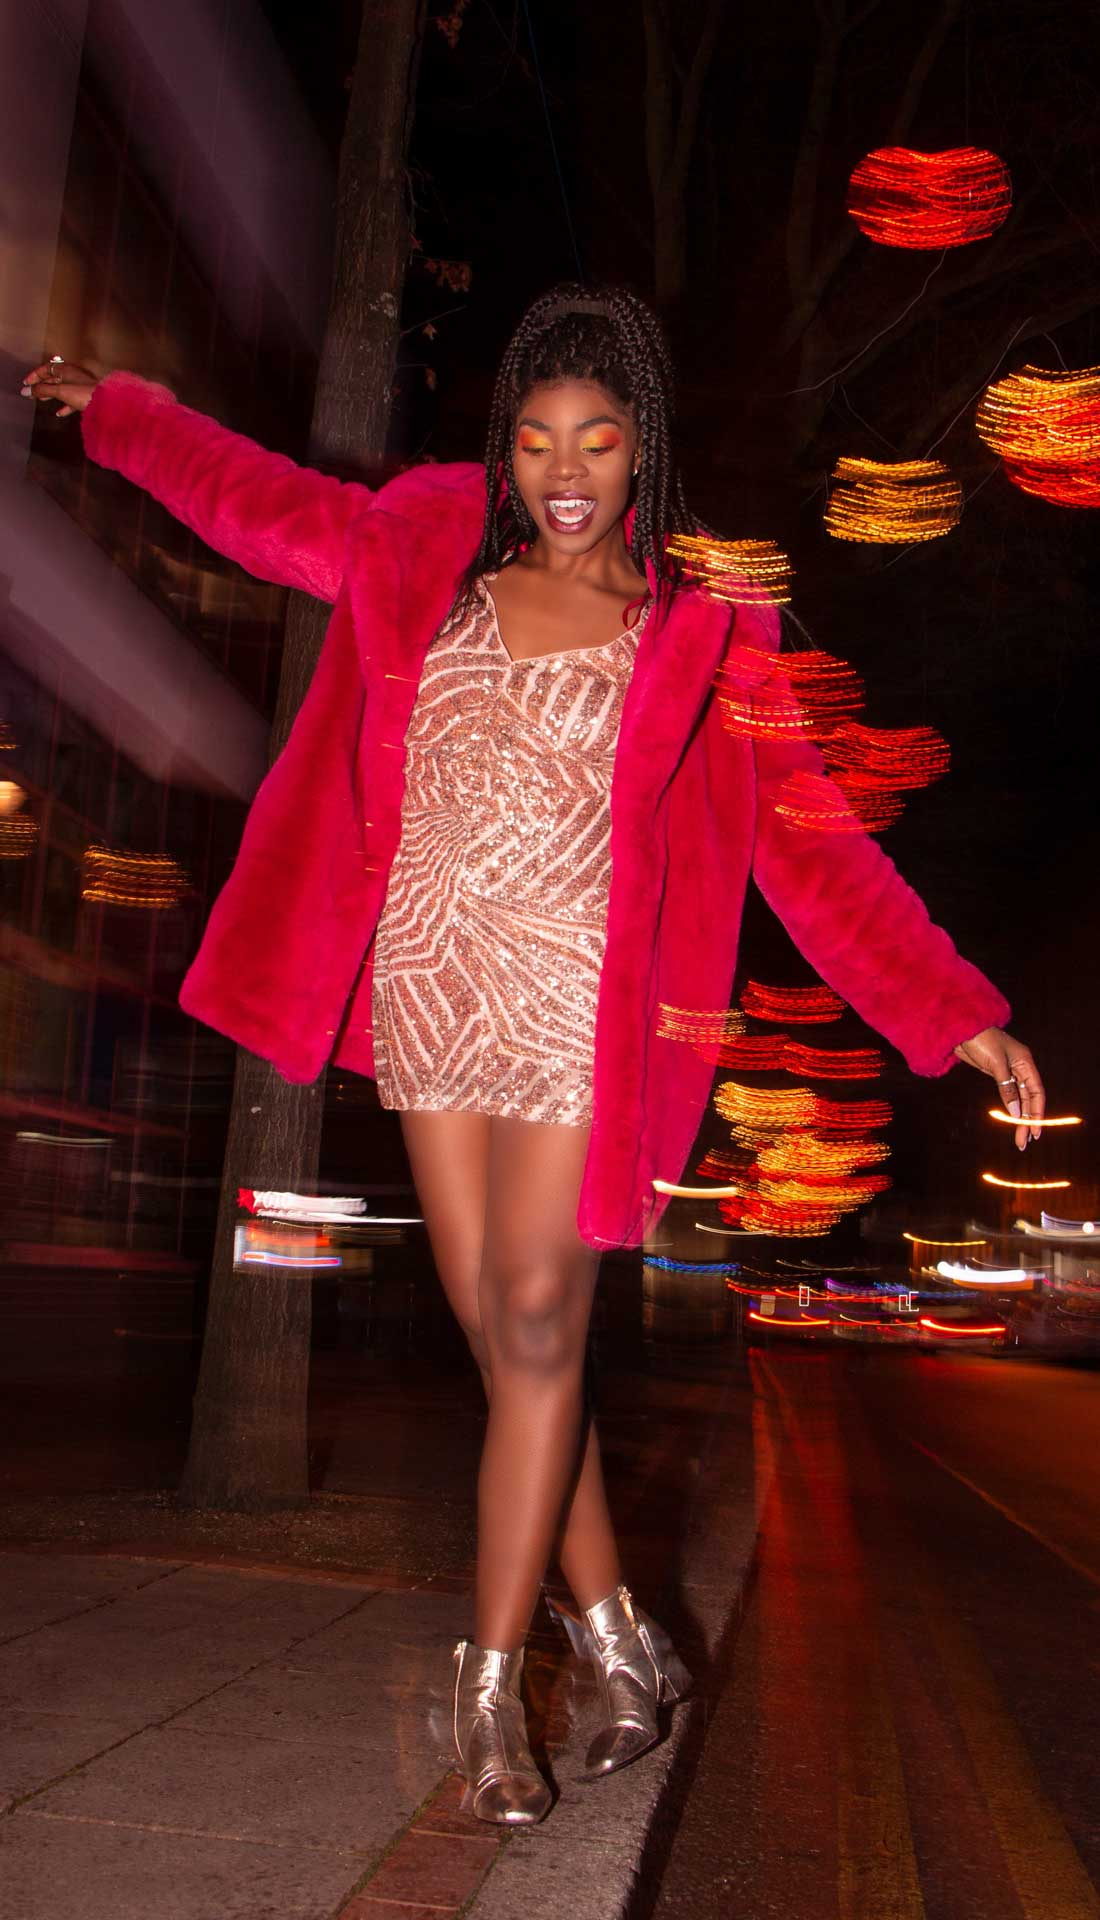 A black woman wearing glitter dress and pink fur is balancing on the curb in night Birmingham, U.K.